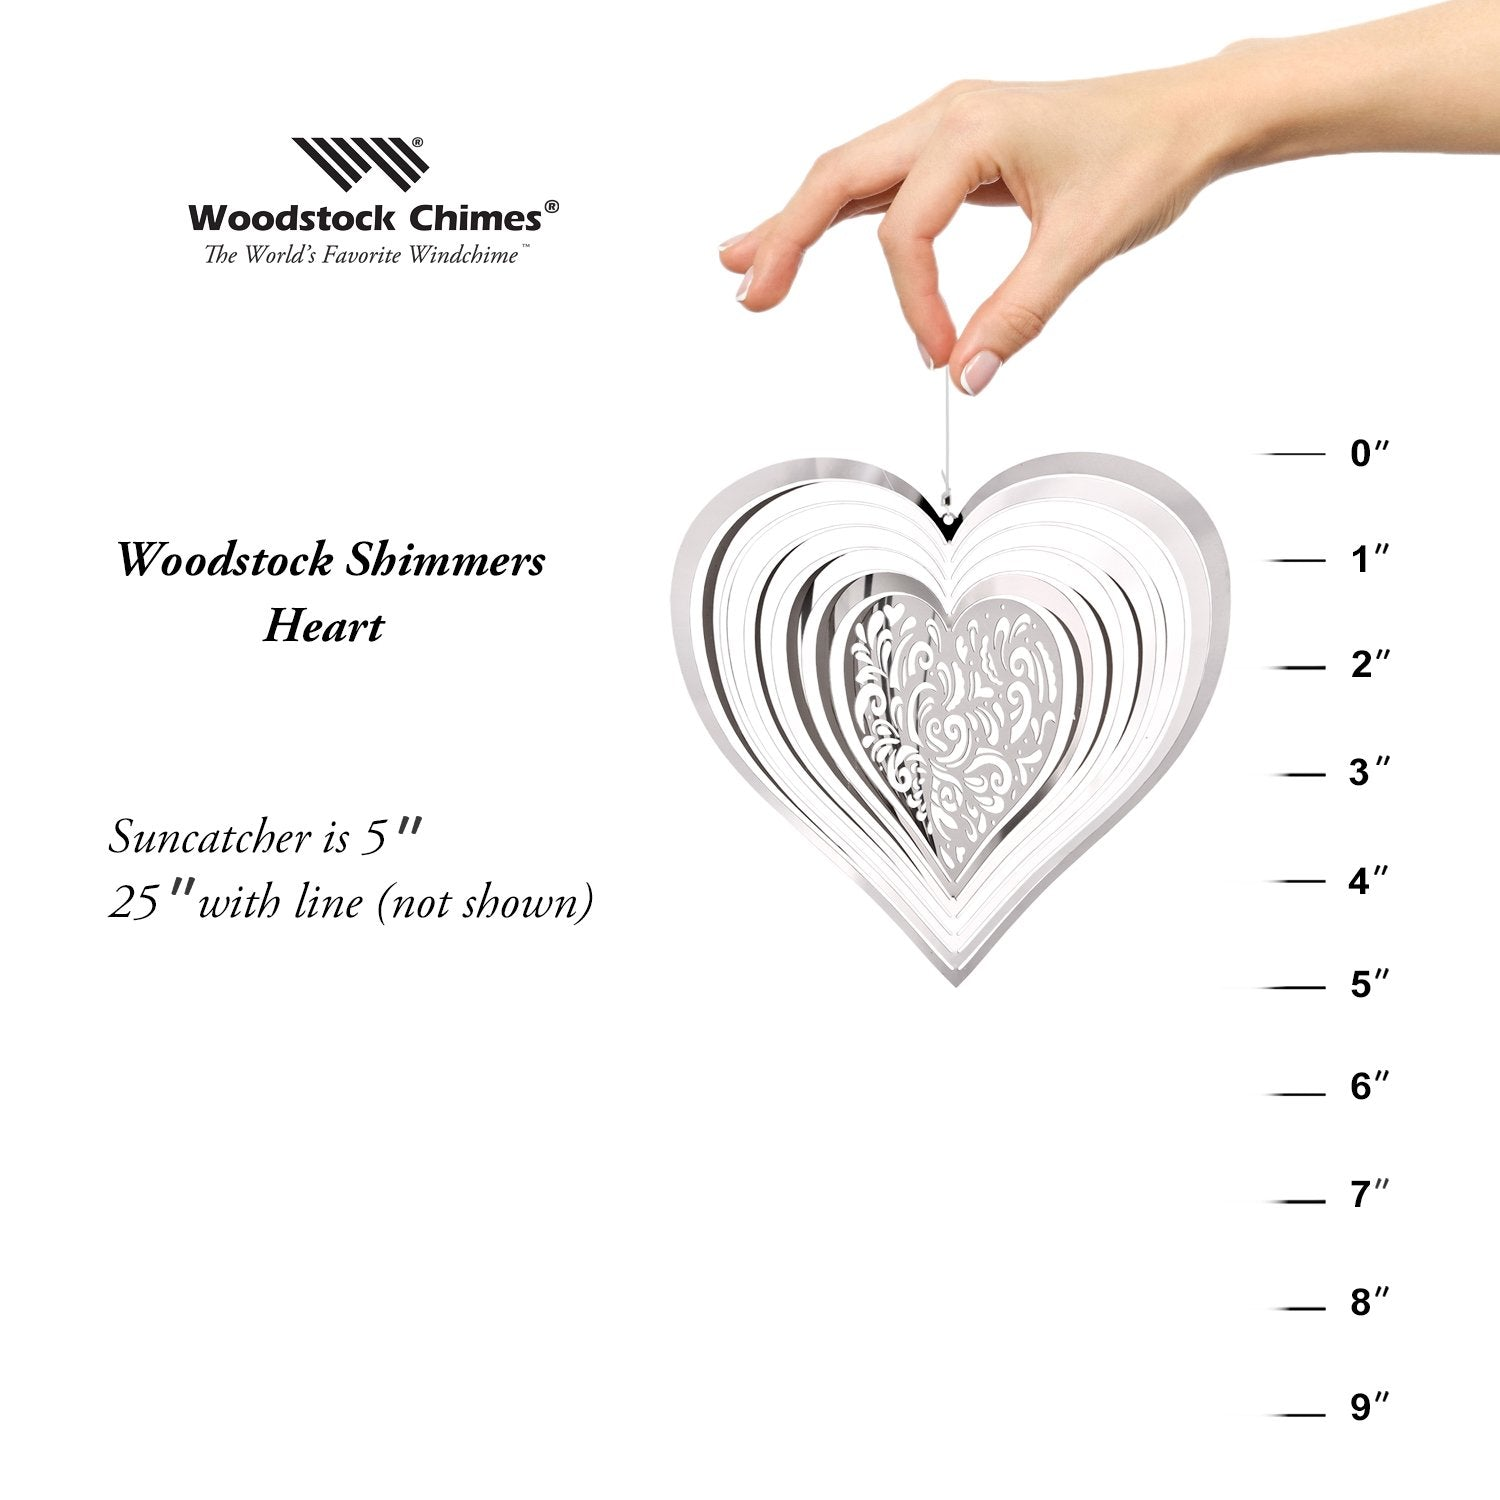 Shimmers - Heart proportion image